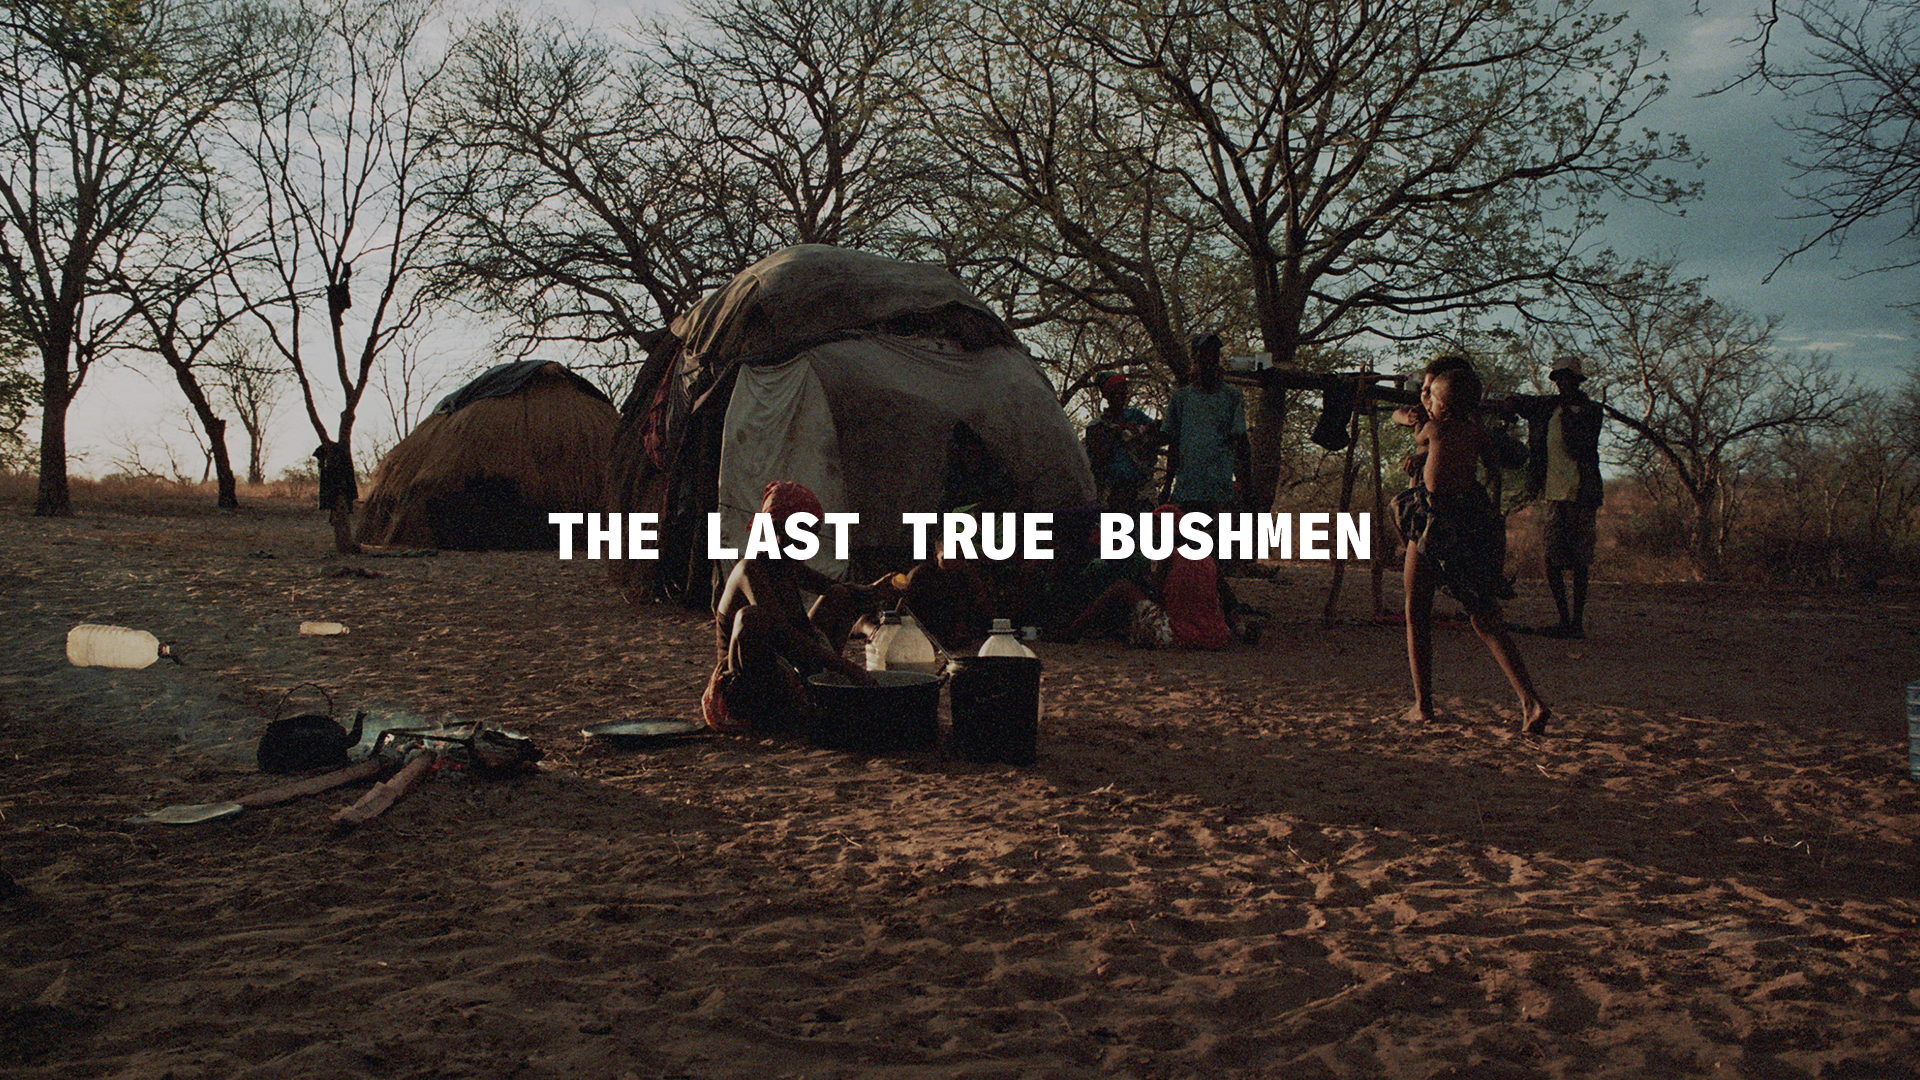 The Last True Bushmen